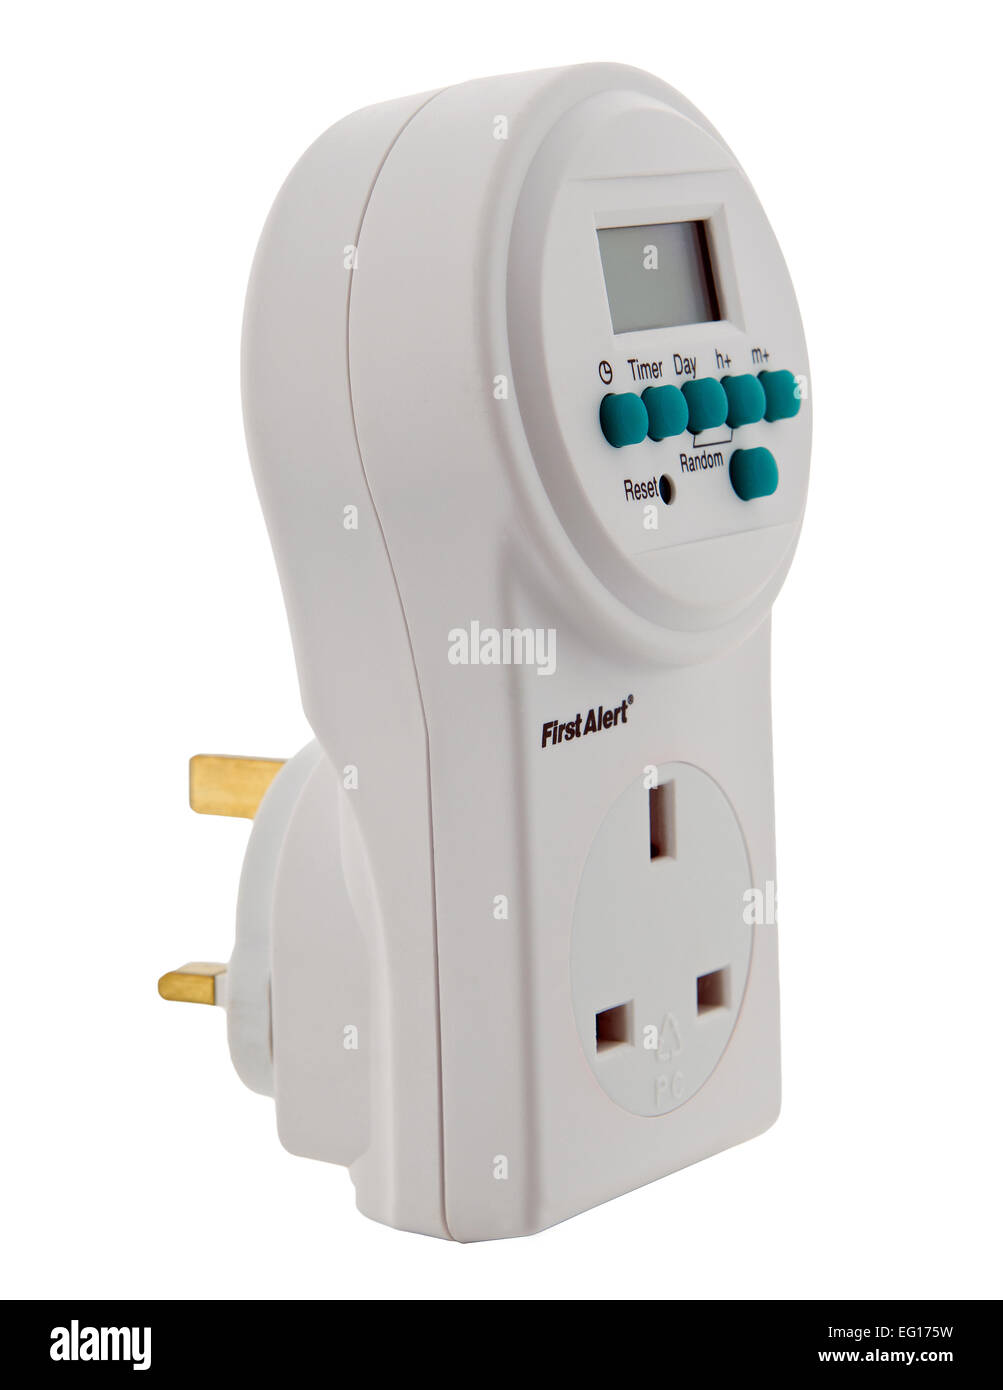 digital electrical wall socket timer on white background - Stock Image